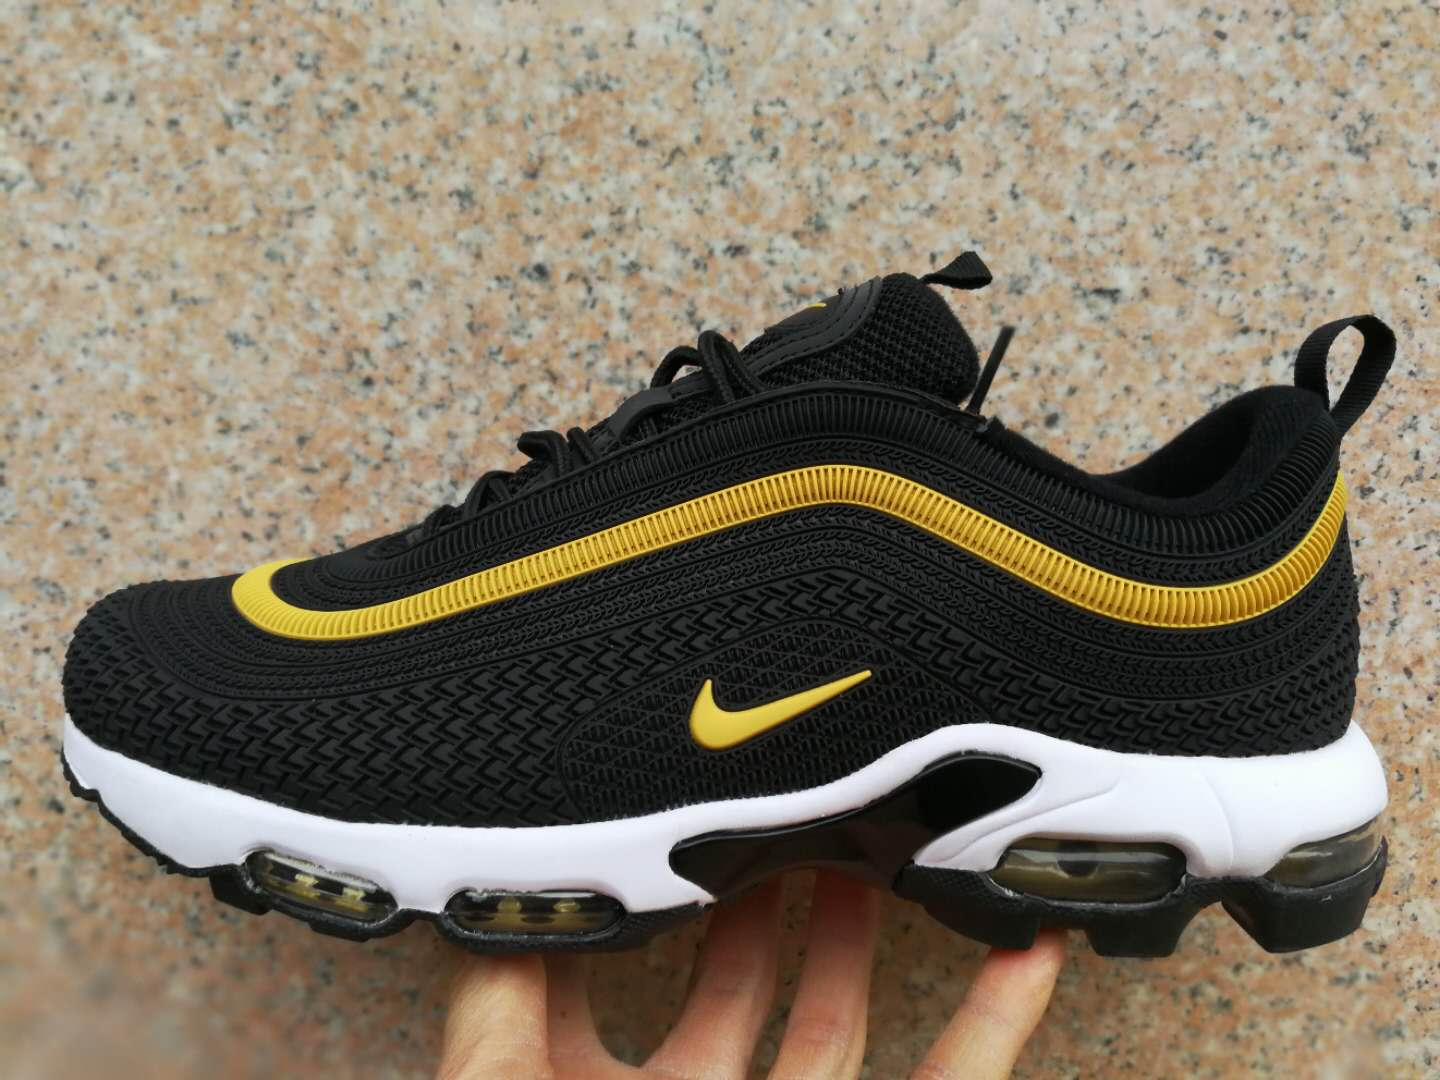 Nike Air Max TN 97 Plastic Black Gold Shoes